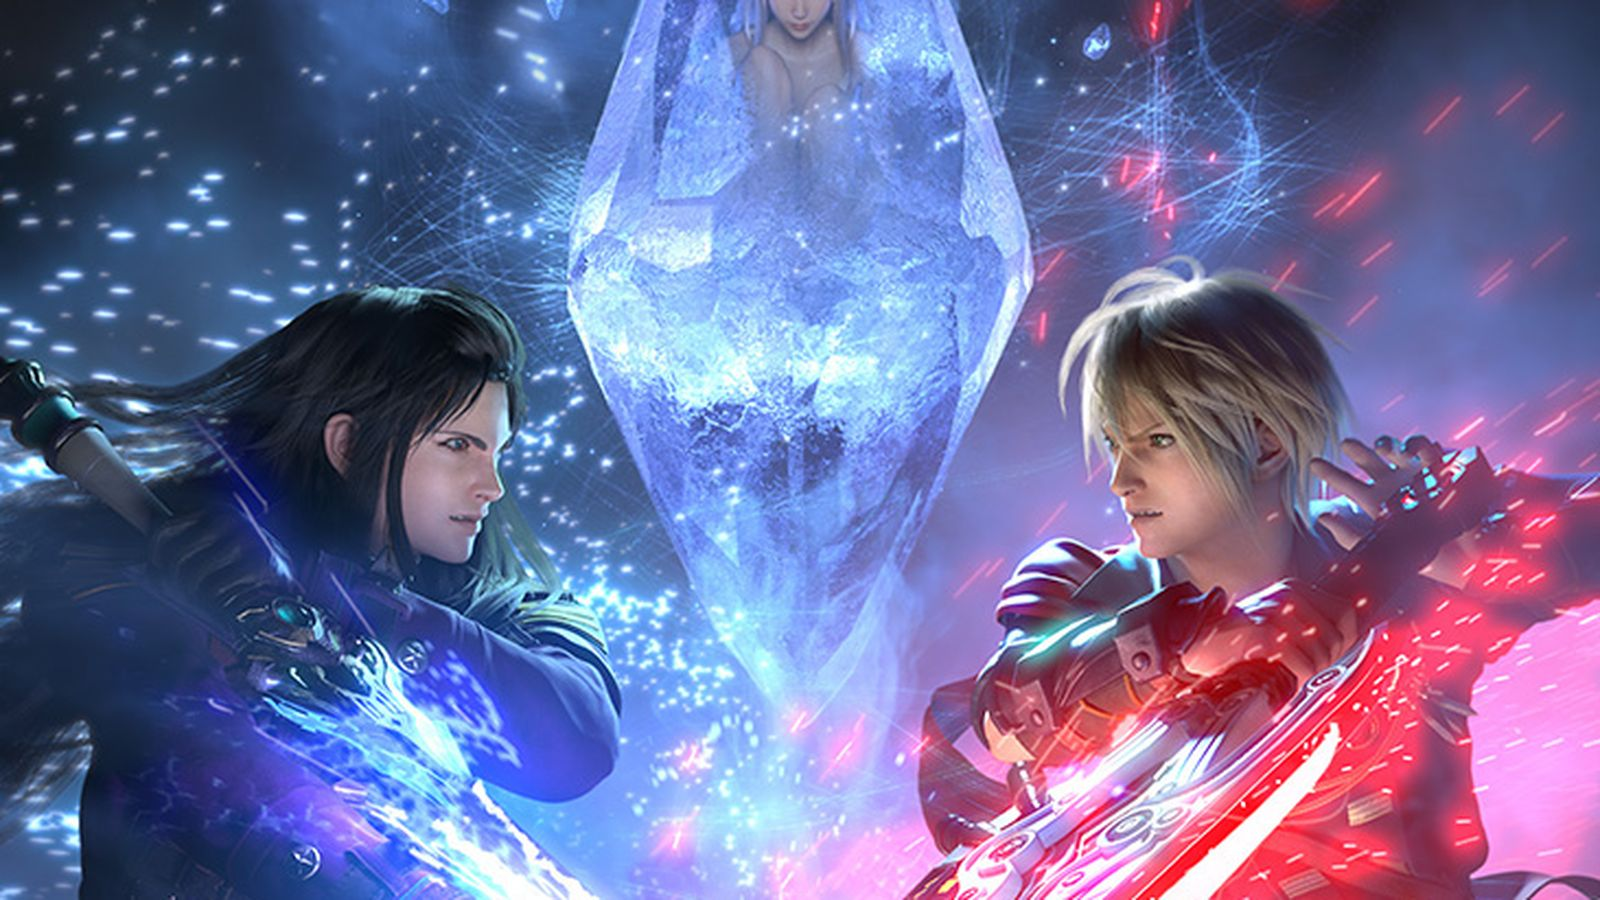 Could Final Fantasy Brave Exvius Developers Be Trying To